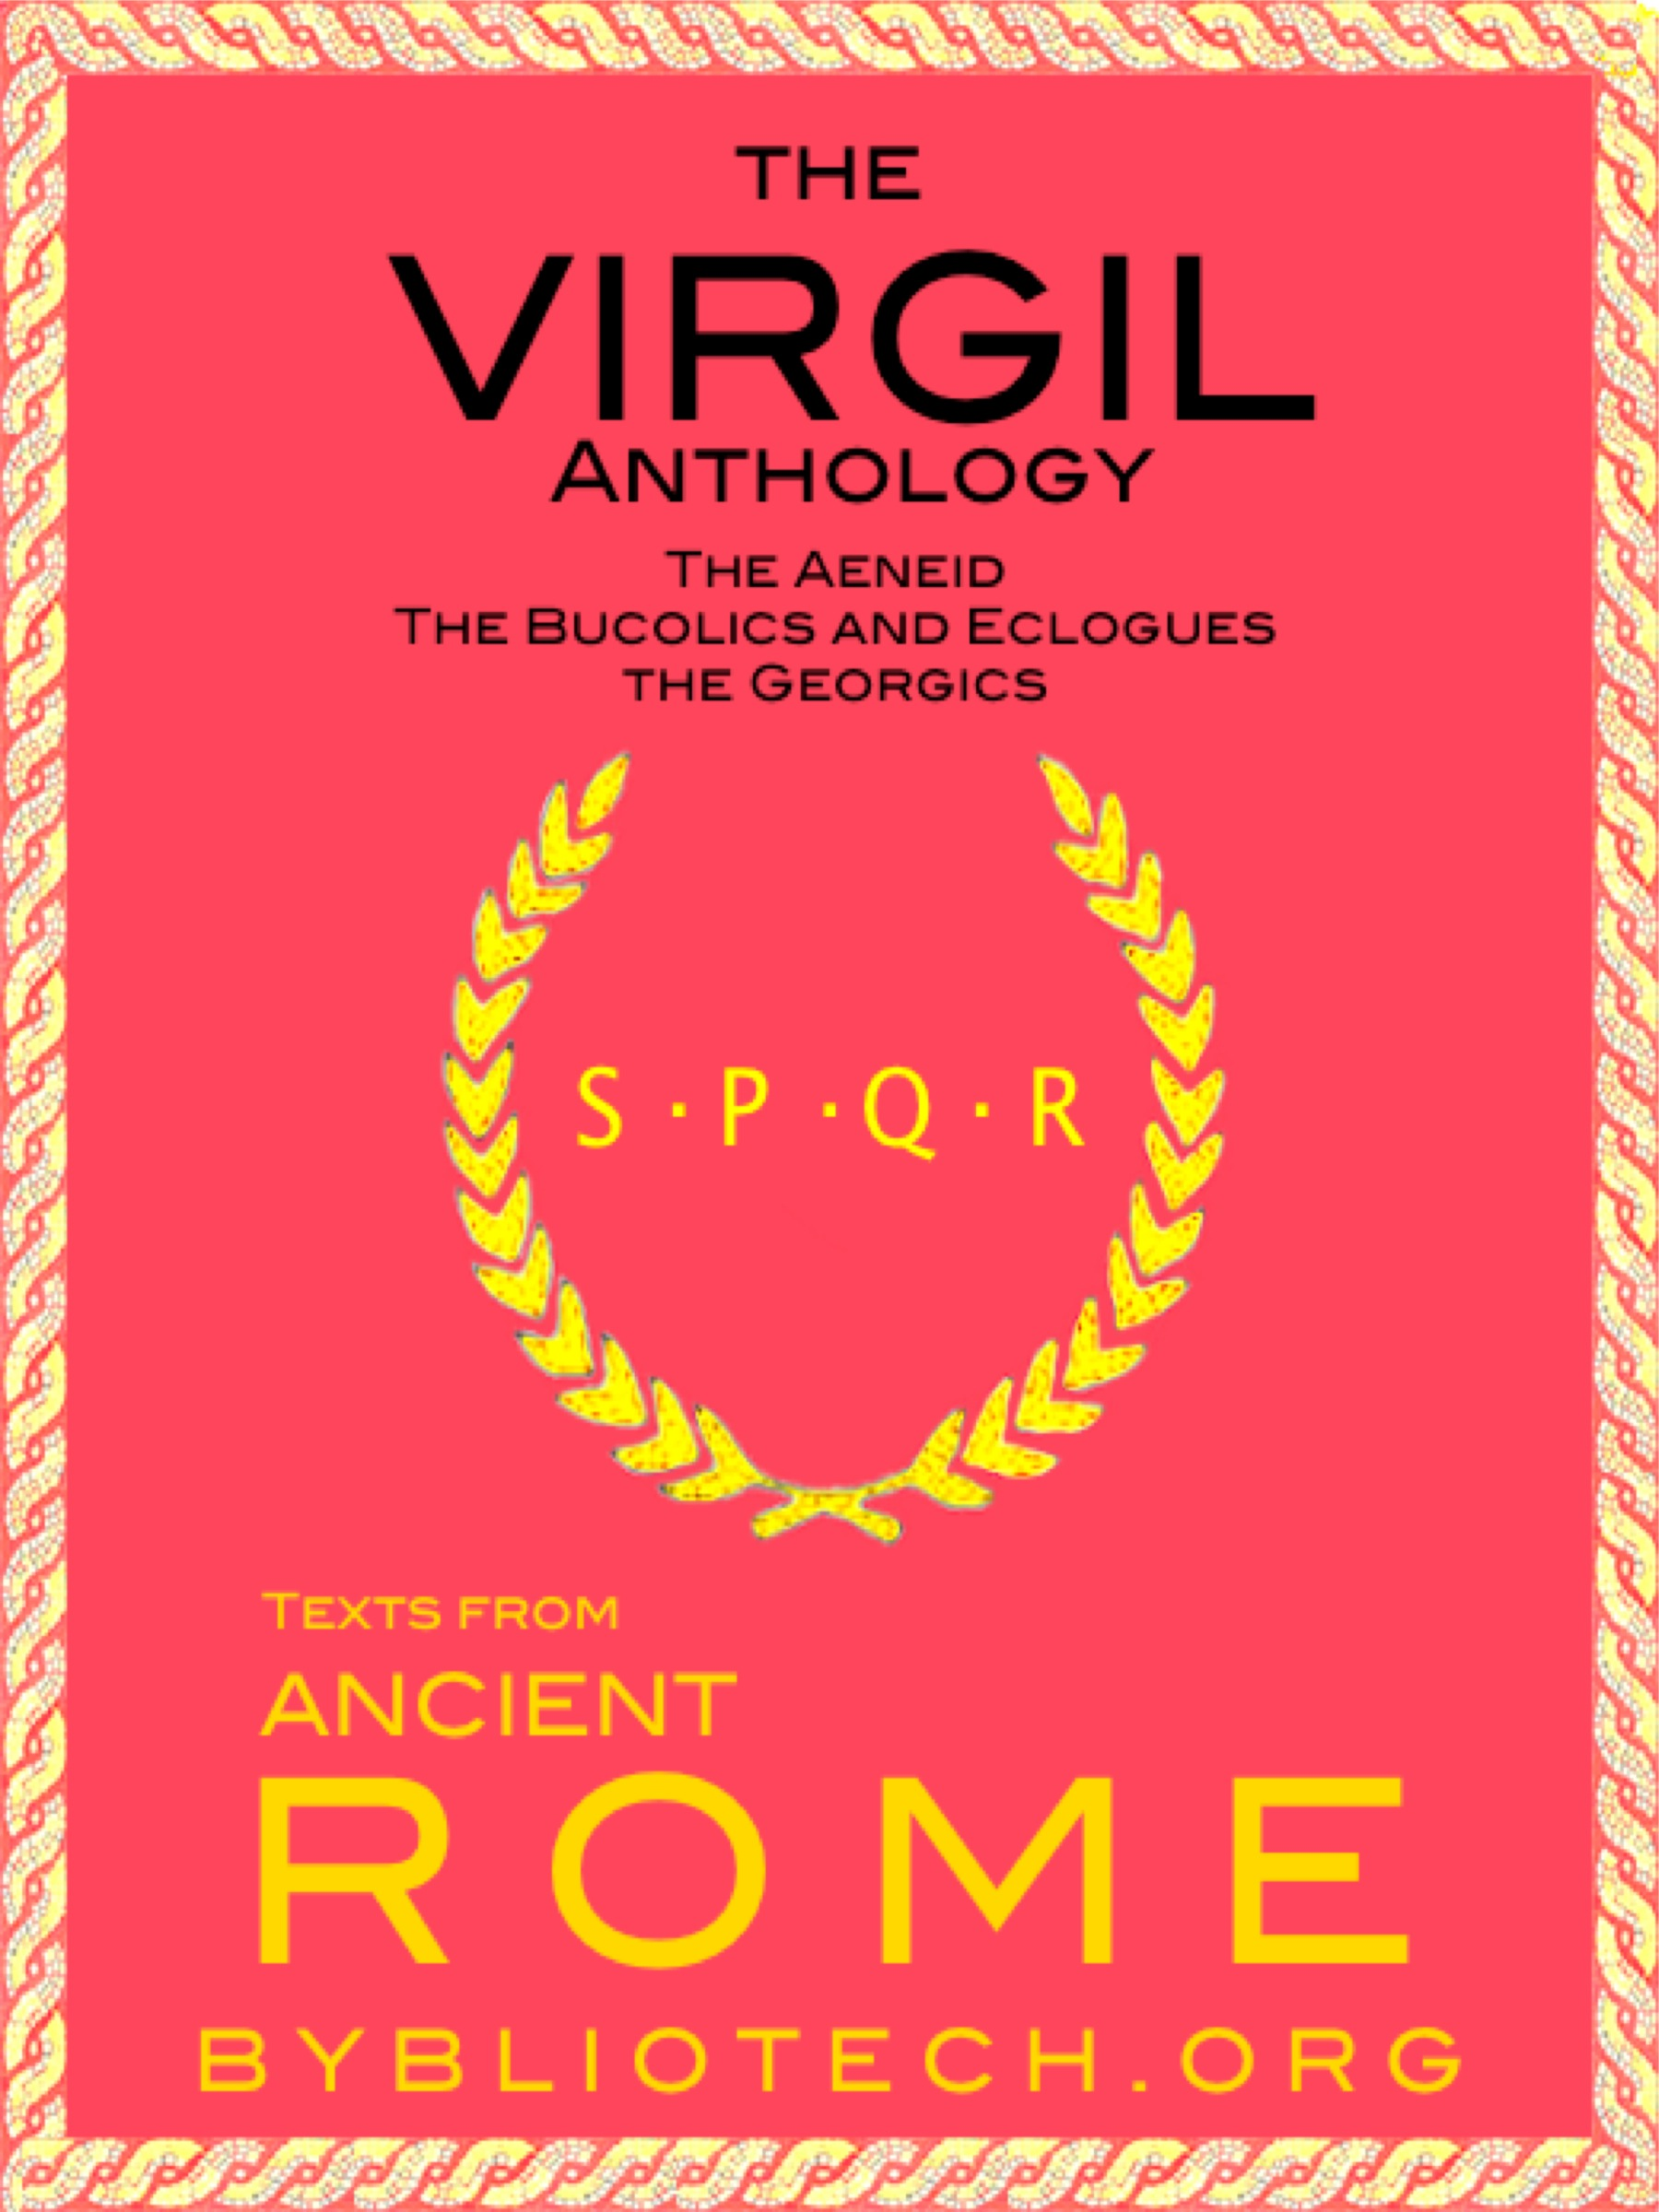 The Complete Virgil Anthology: The Aeneid, the Eclogues and the Georgics